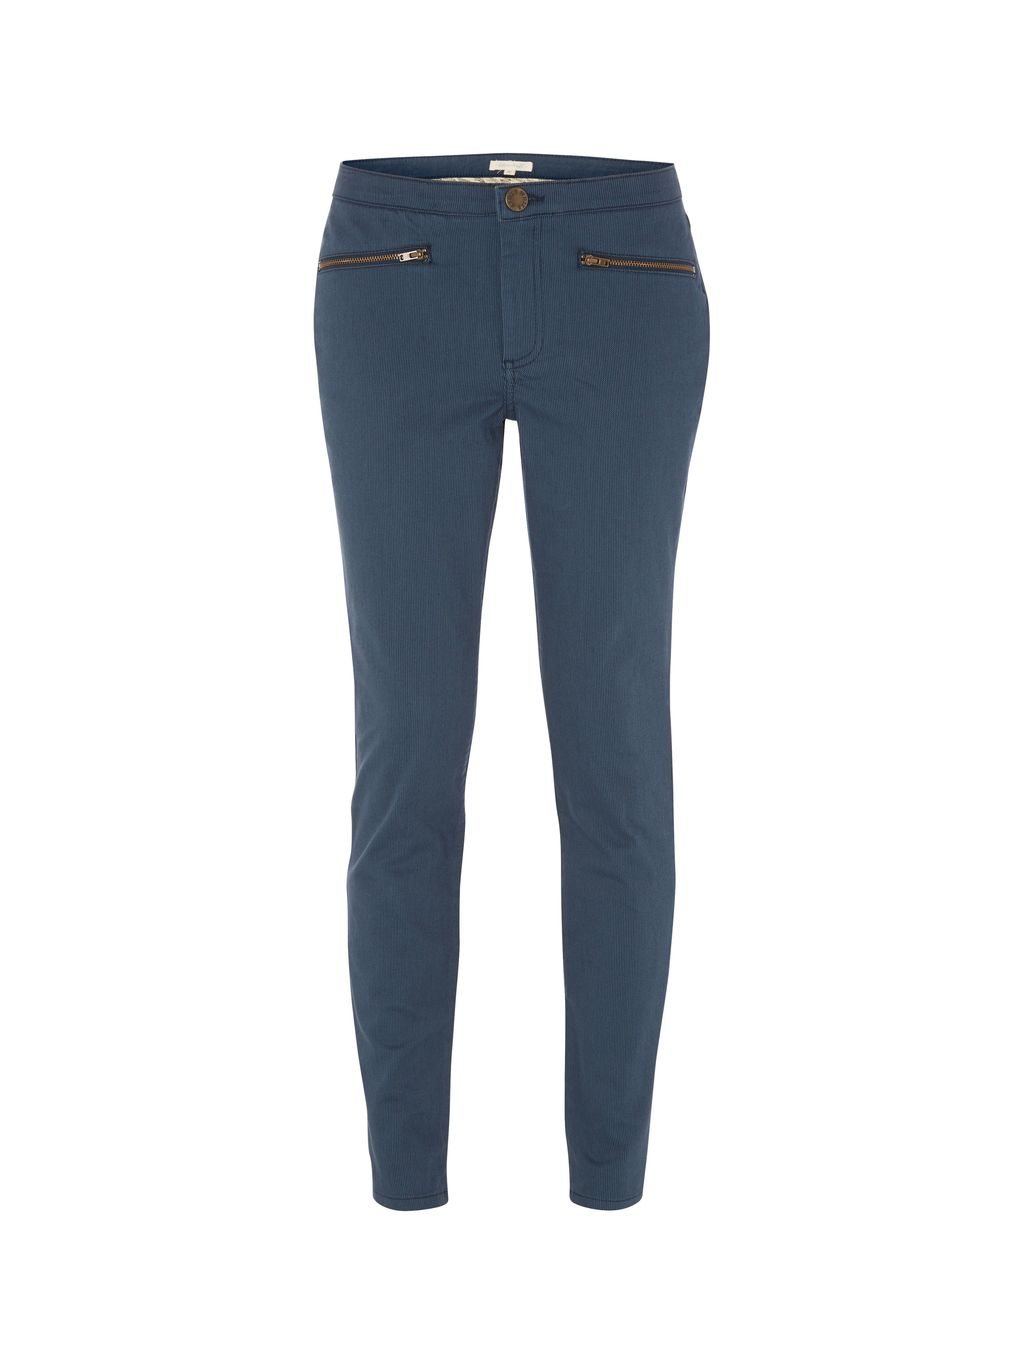 Nomad Ankle Zip Trouser, Navy - length: standard; pattern: plain; waist: mid/regular rise; predominant colour: denim; occasions: casual, creative work; fibres: cotton - stretch; texture group: cotton feel fabrics; fit: slim leg; pattern type: fabric; style: standard; season: a/w 2015; wardrobe: highlight